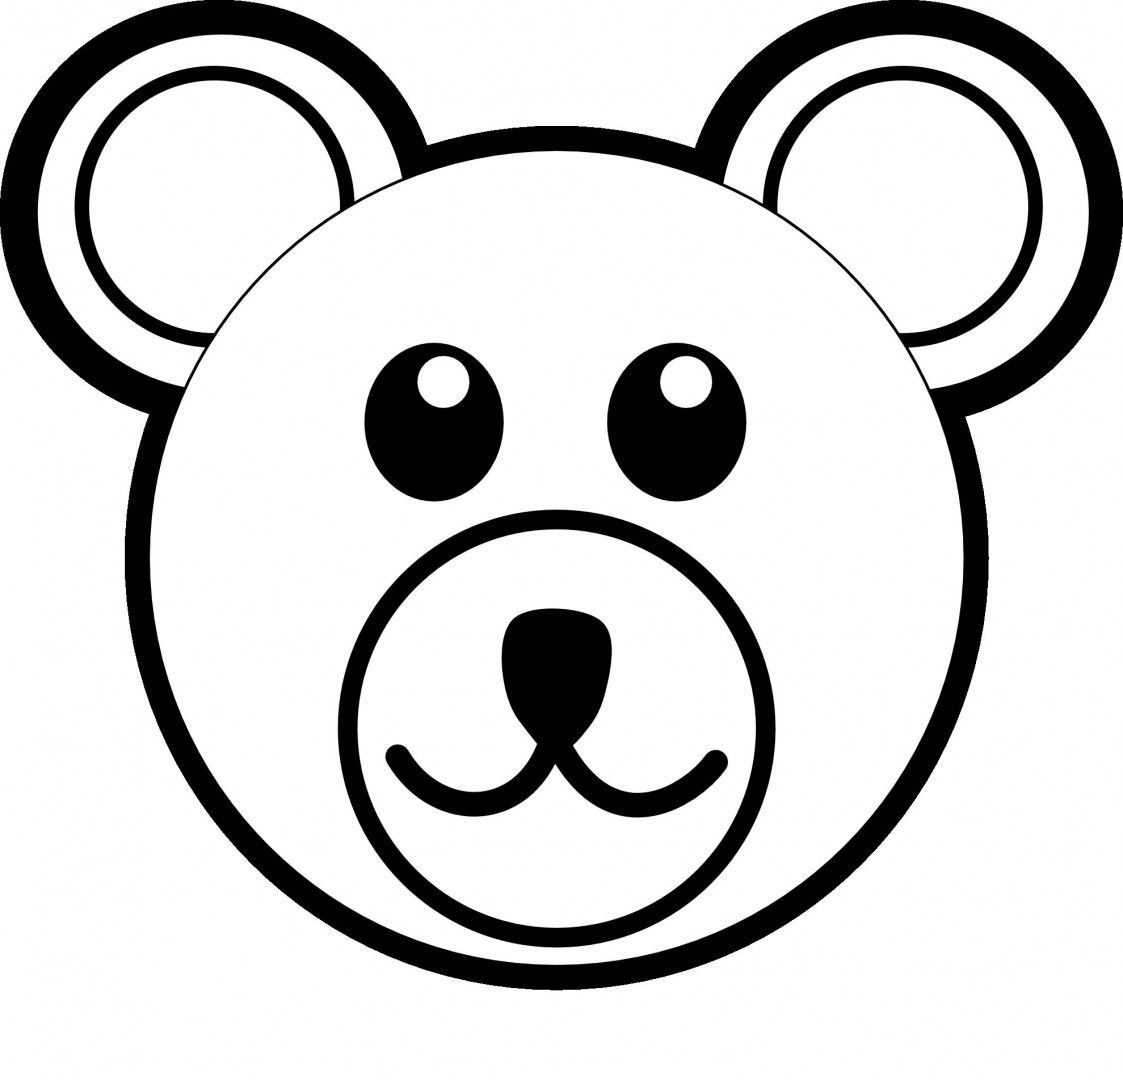 Animal Faces Coloring Pages Easy Drawings Bear Coloring Pages